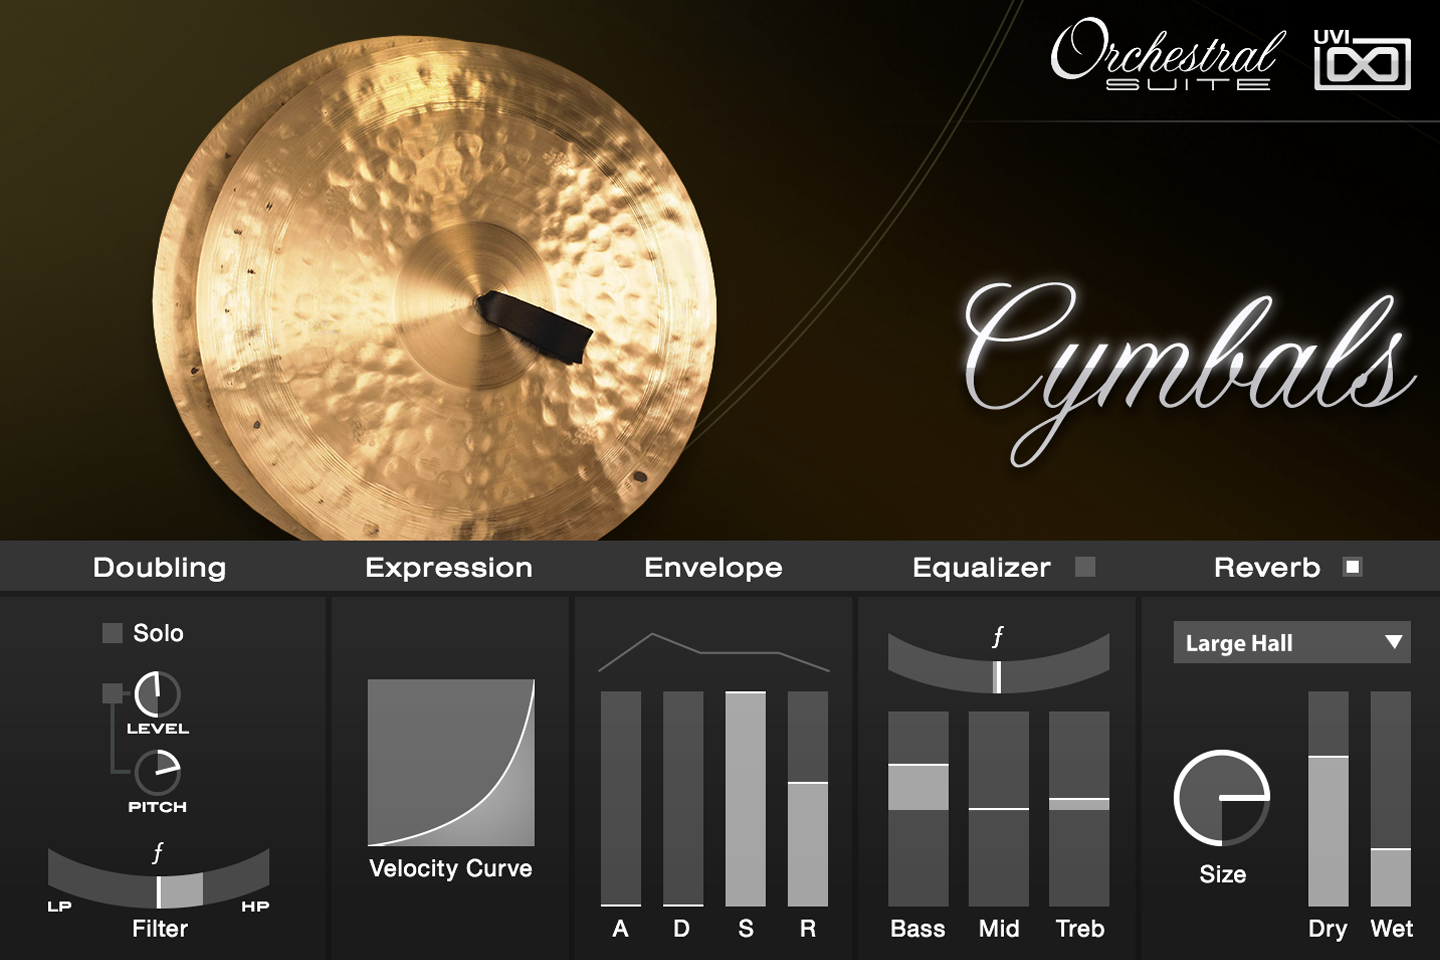 UVI Orchestral Suite | Cymbals UI